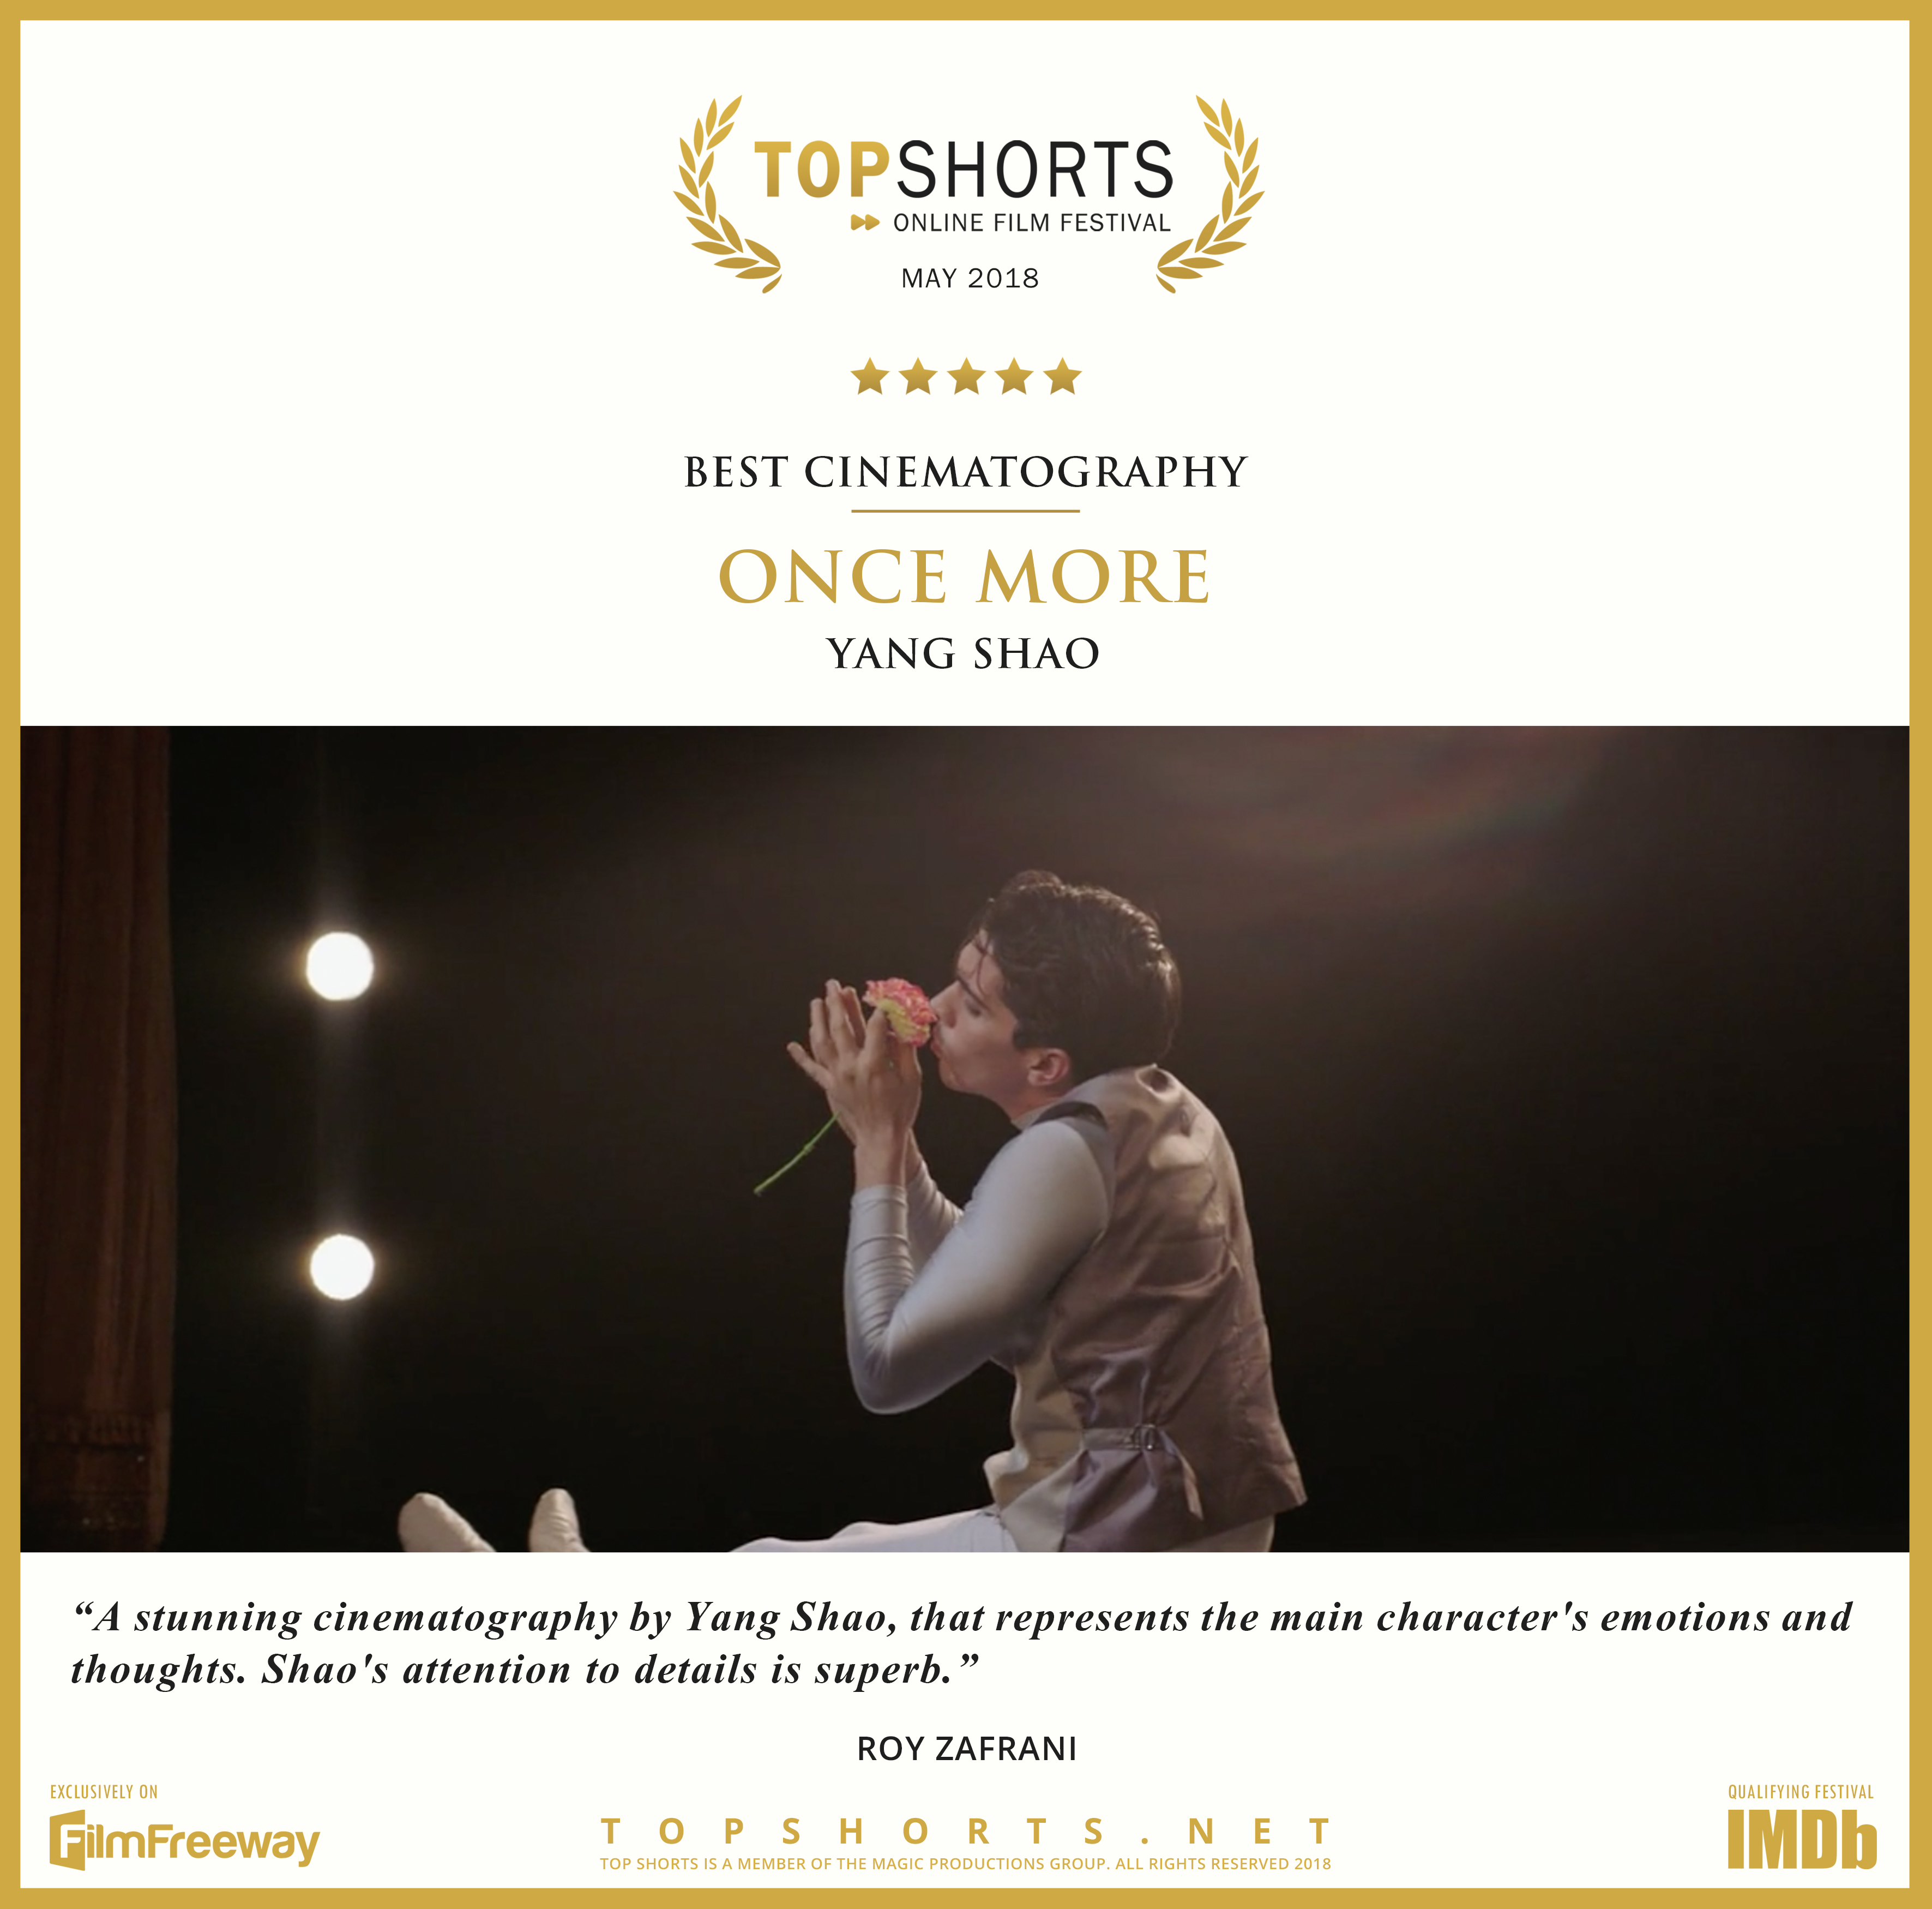 2018 05 Best Cinematography - ONCE MORE